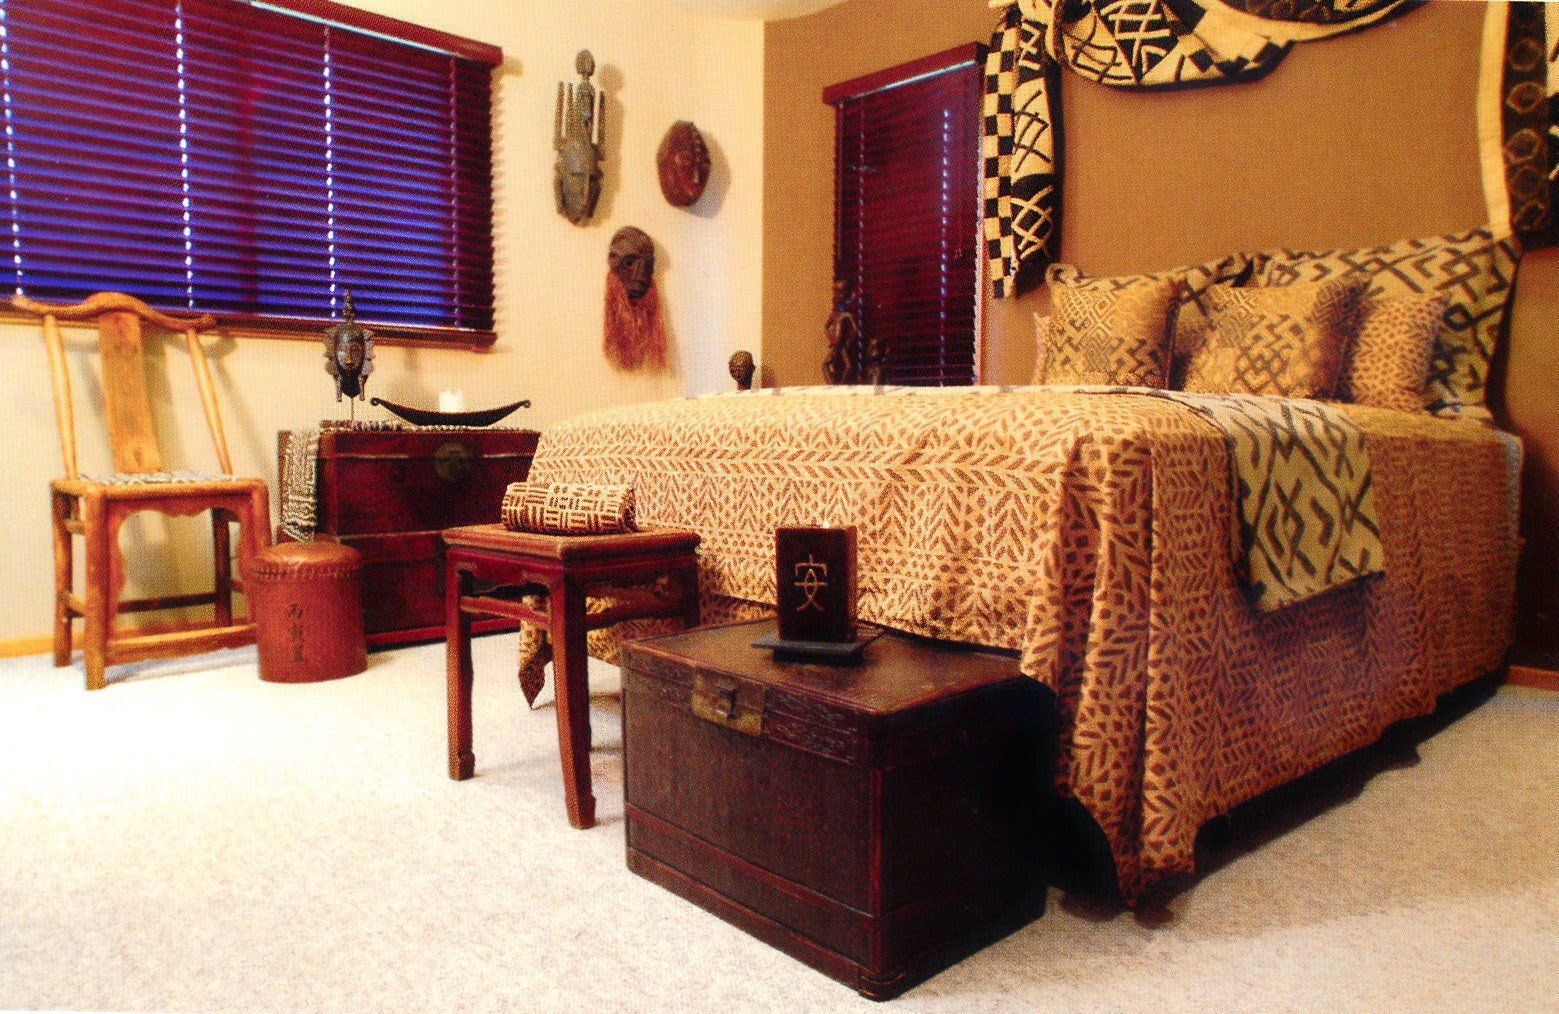 Foundation dezin decor bedroom design in african way for Bedroom decorative accessories